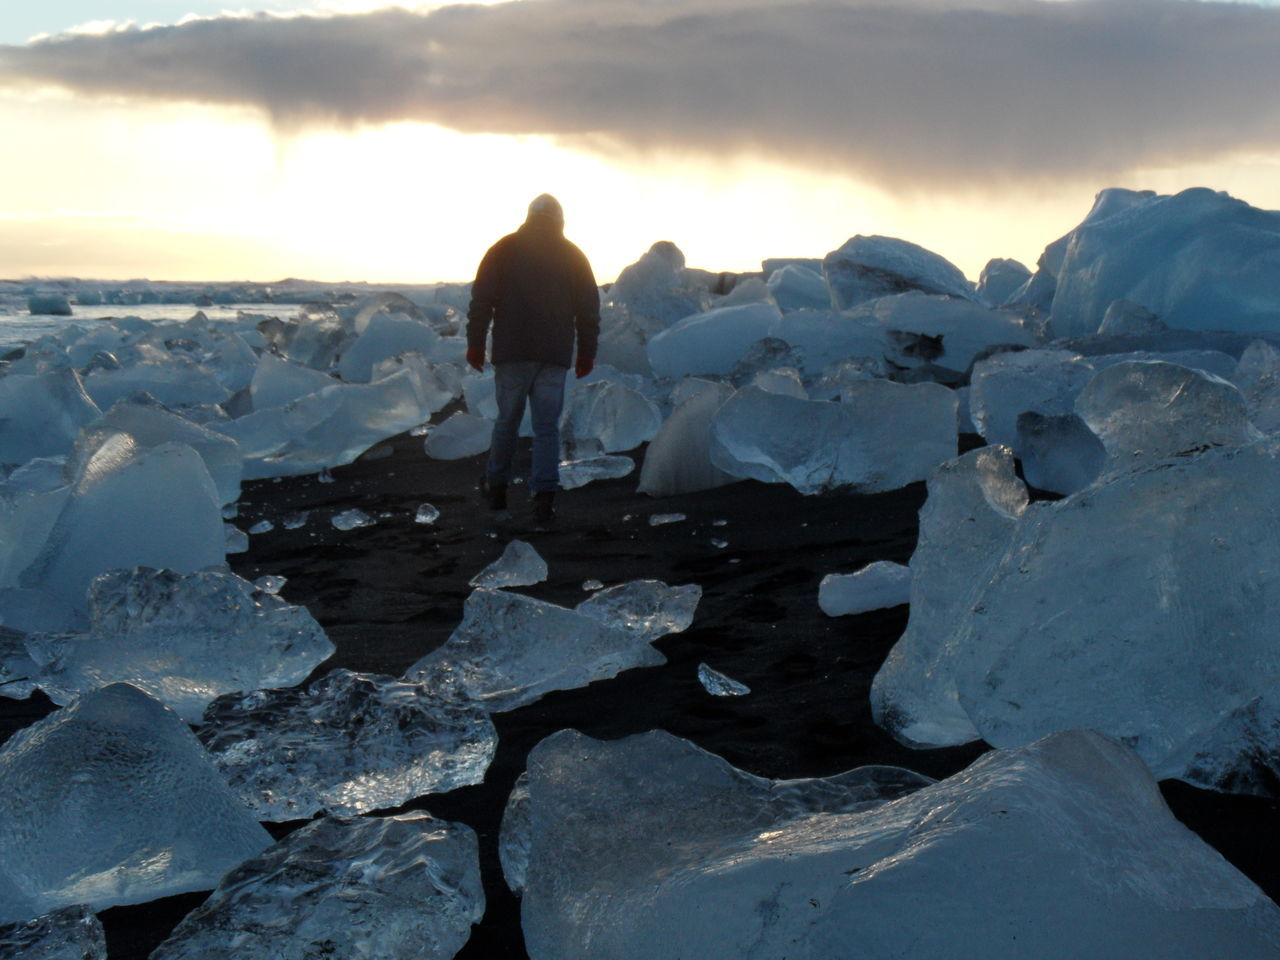 Lost in ice world 🚶 Adventure Beauty In Nature Black Sand Cold Temperature Dramatic Sky Nature Frozen Full Length Ice Ice Blocks Iceland_collection Jökulsárlón Landscape Lost Lost In The Ice World Mountain Nature Only Men Outdoors Real People Rear View Rock - Object Scenics Vatnajökull Warm Clothing Way Out